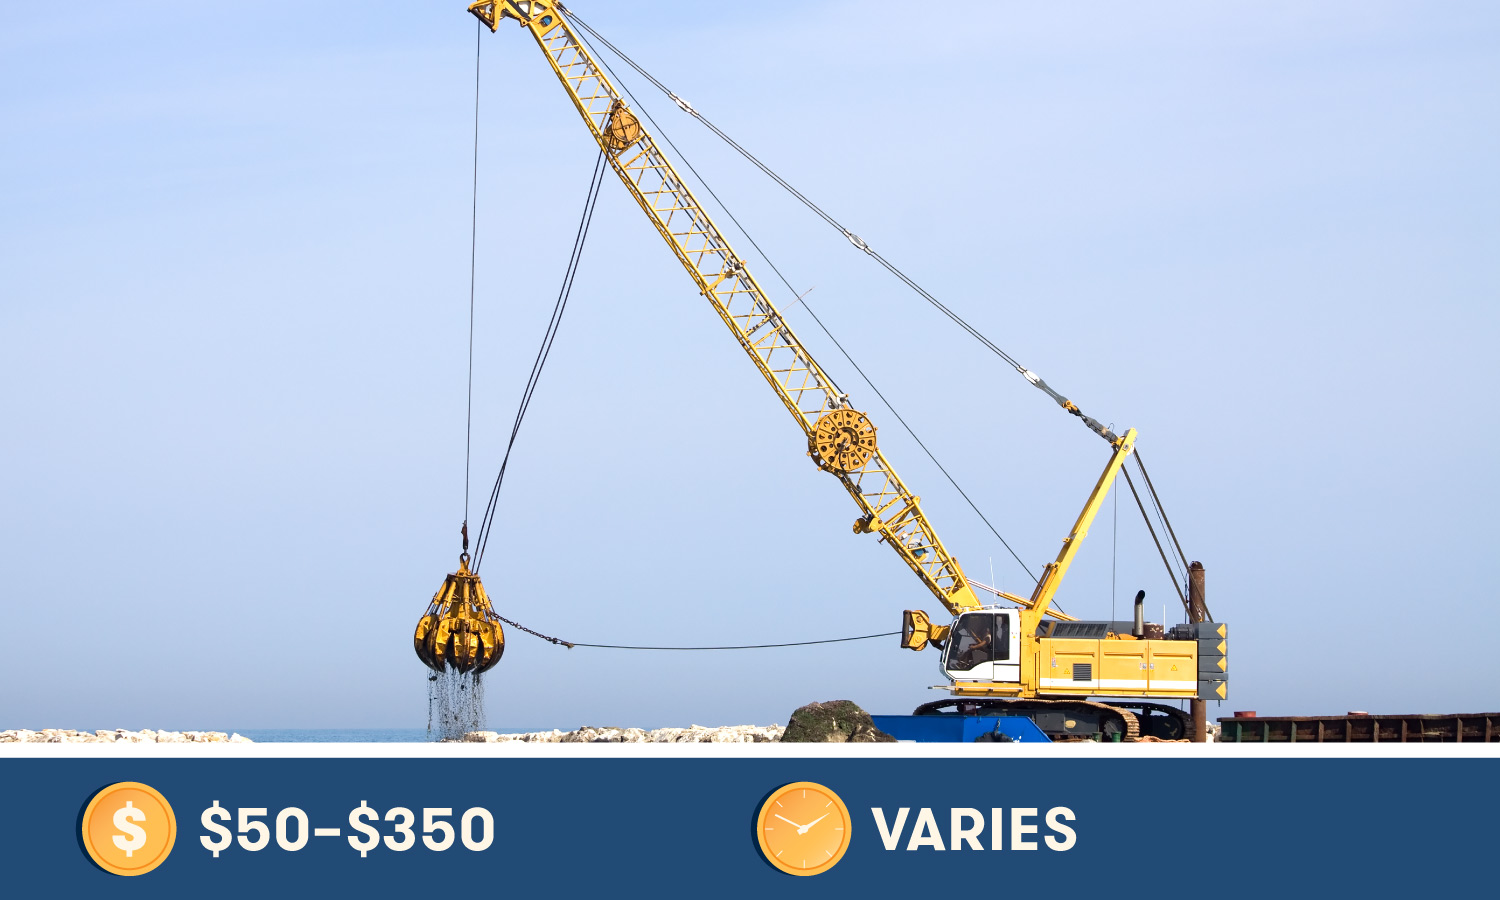 Crane Operation Certification costs $50-$350 and varies in time